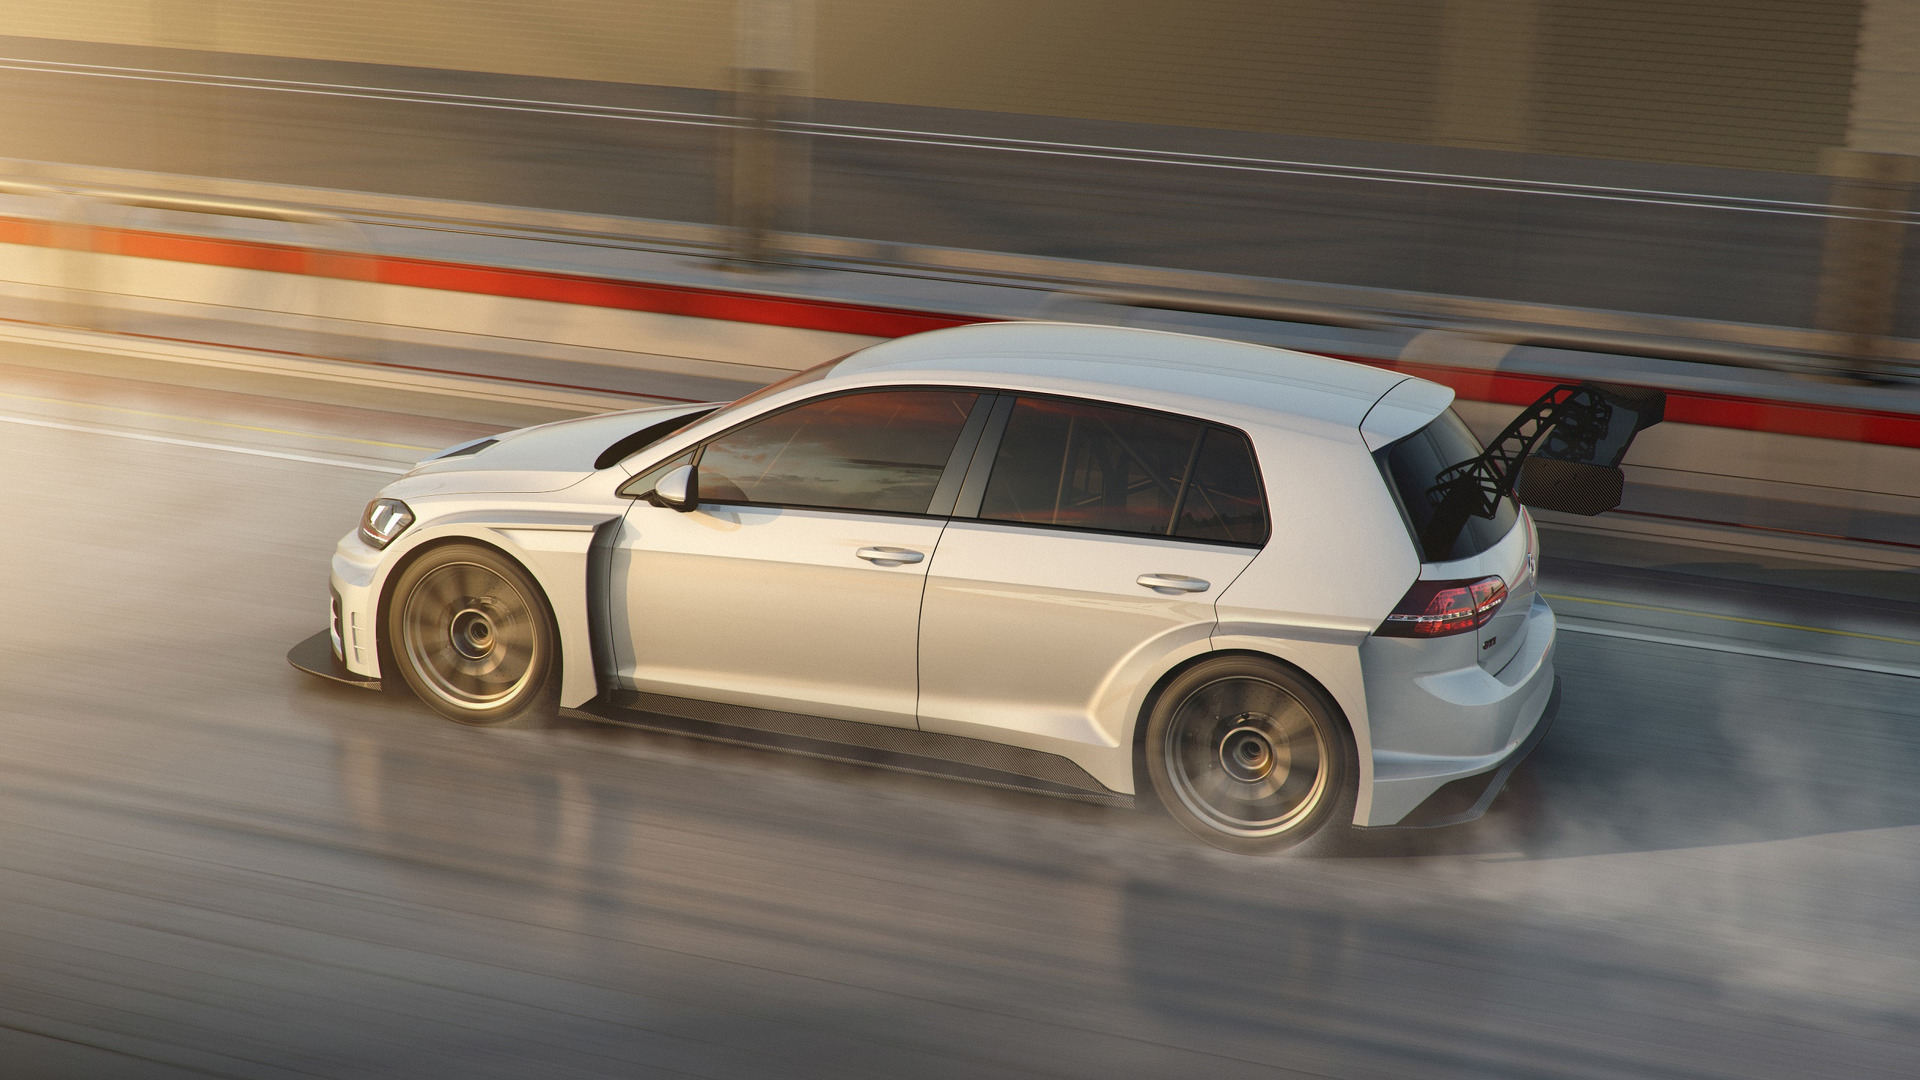 VW Golf GTI TCR Upgraded And Ready To Race